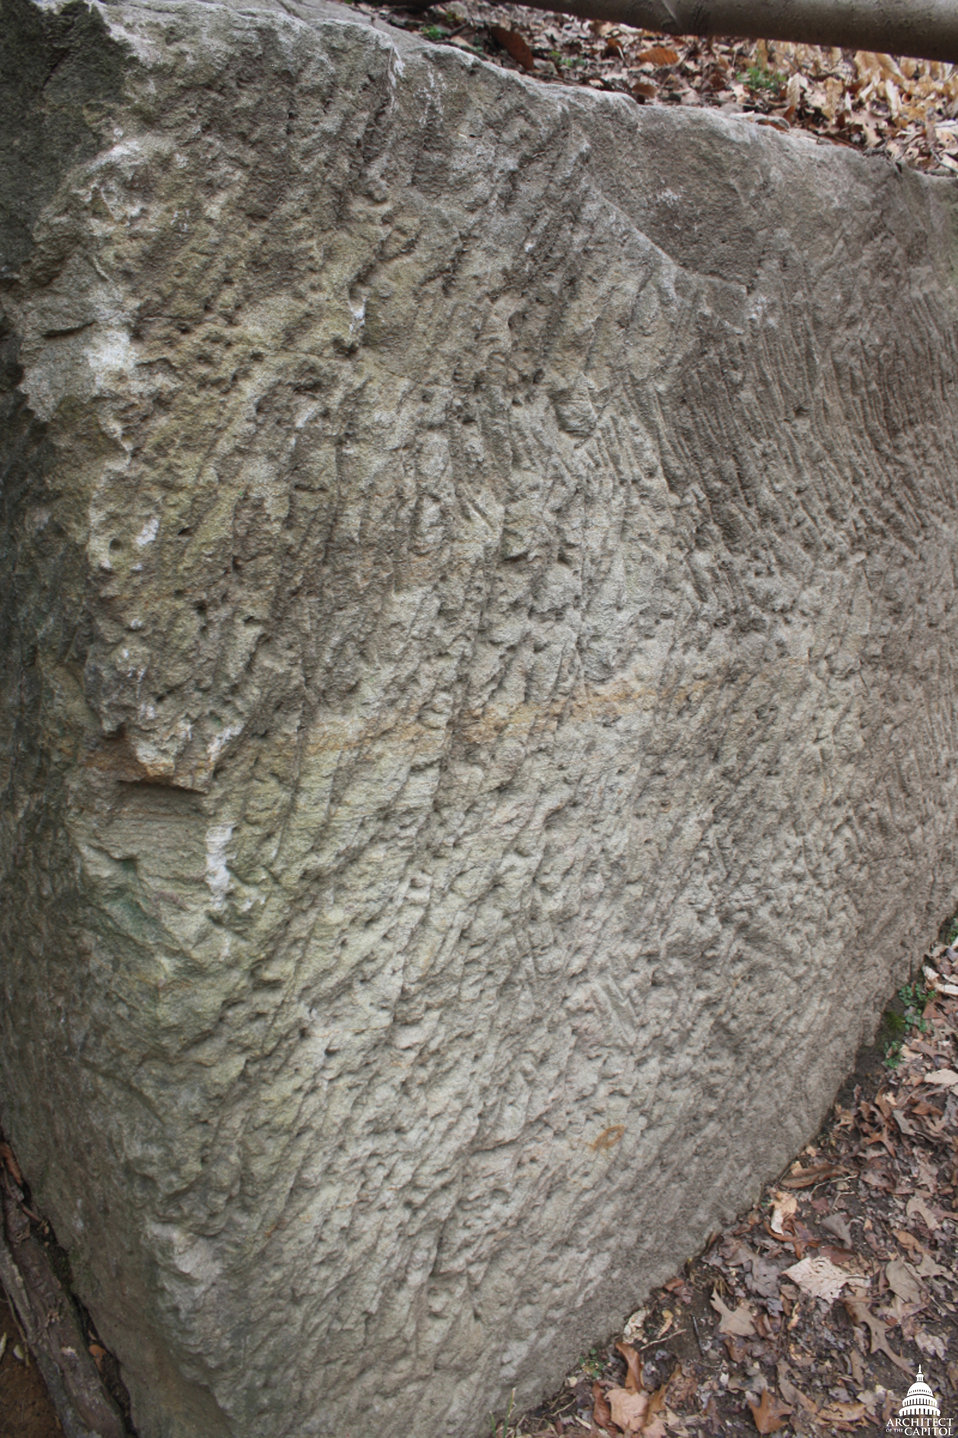 Tool marks visible in stone at Government Island